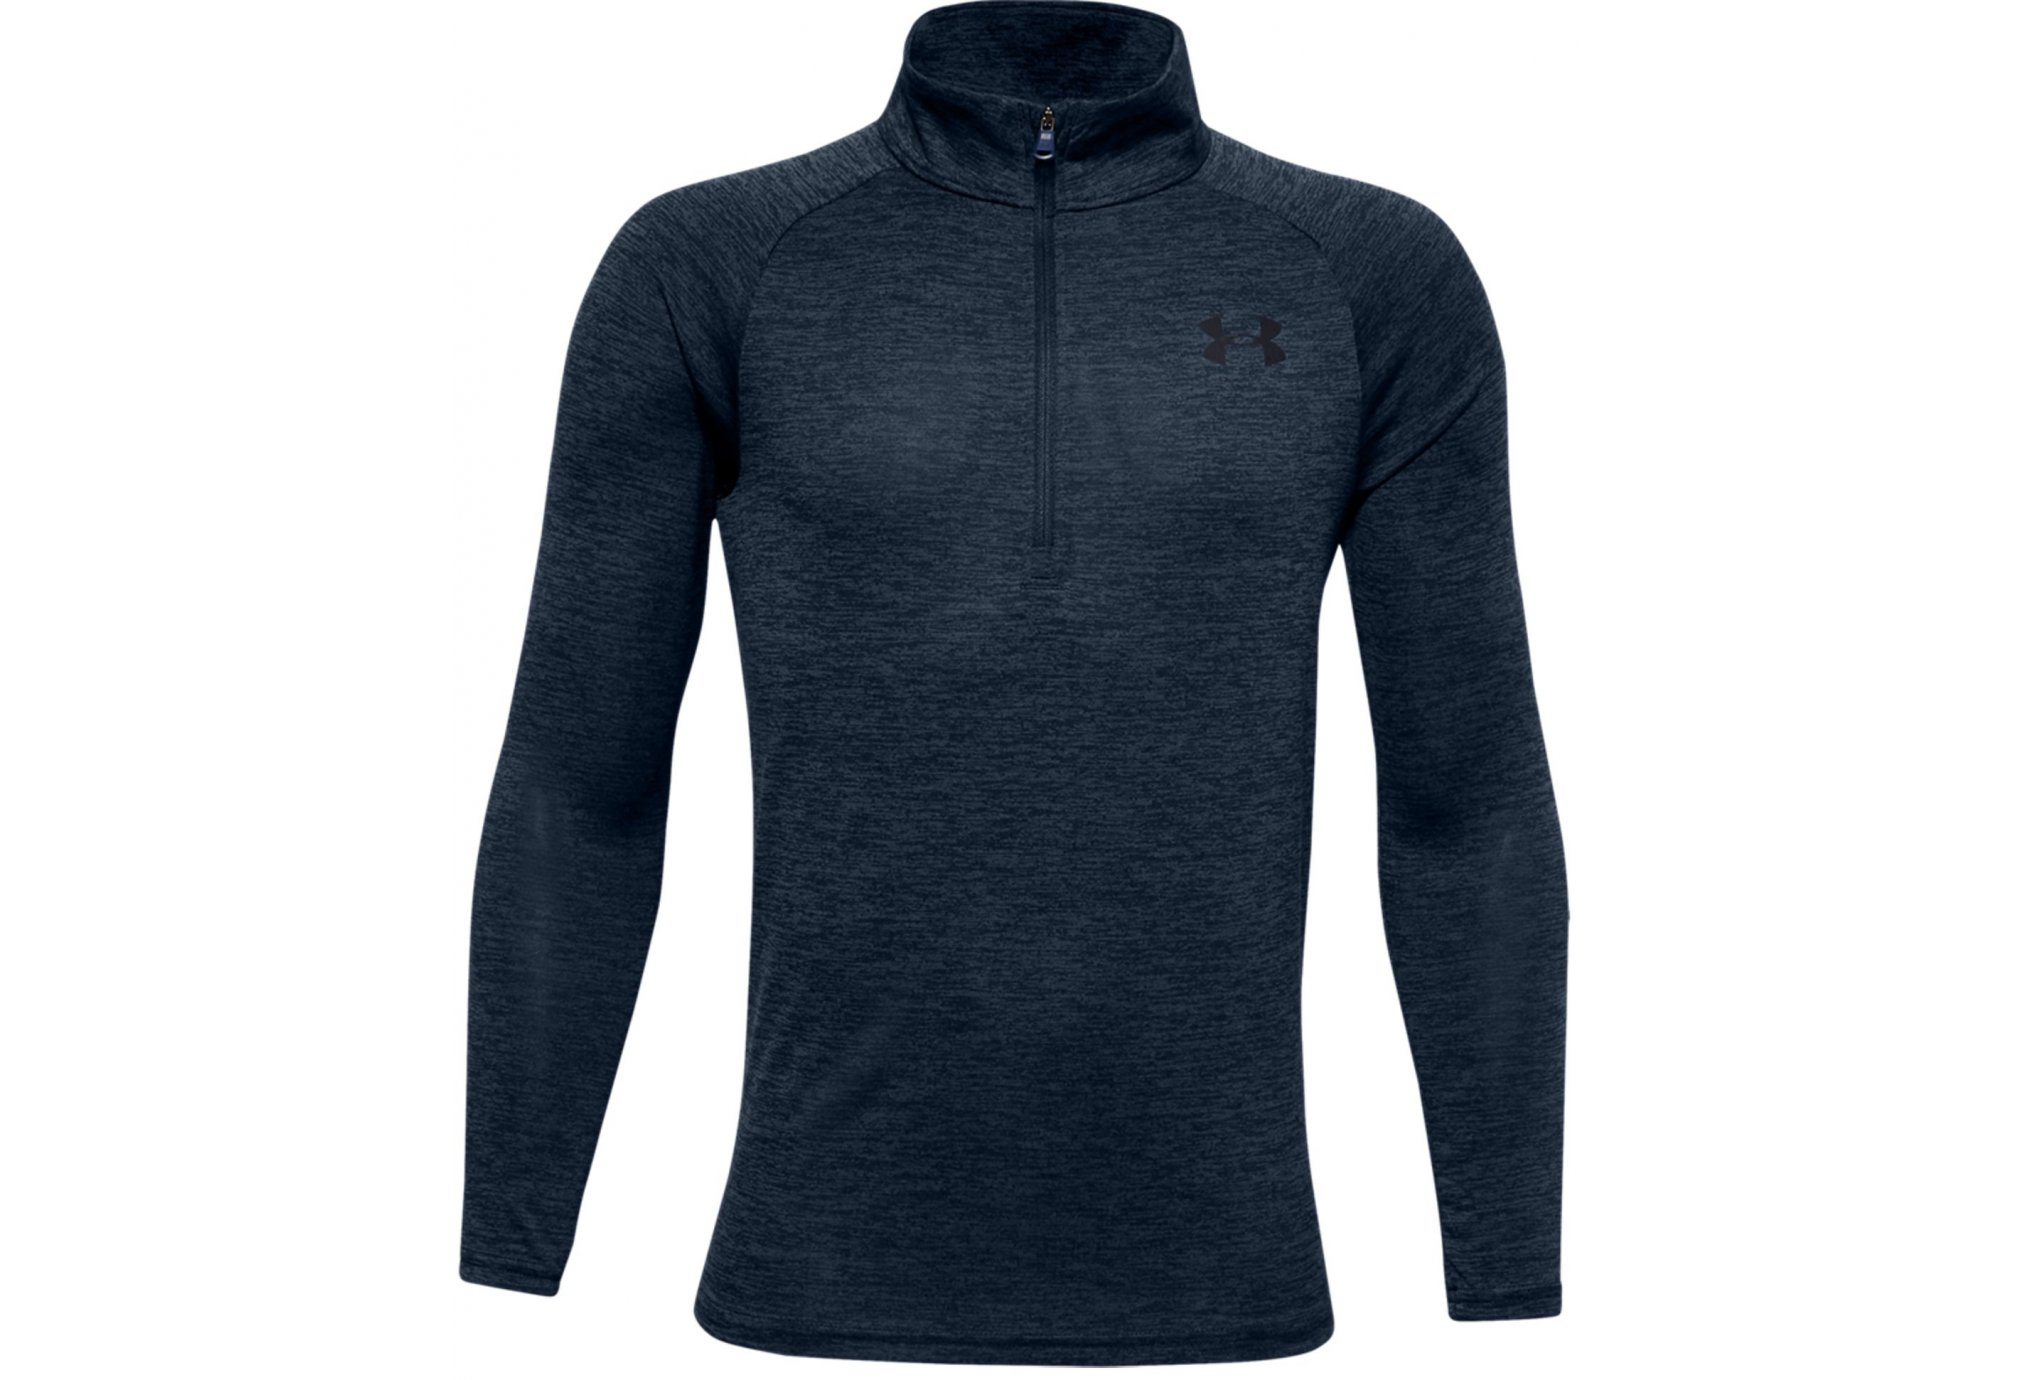 Under Armour Tech 2.0 Junior vêtement running homme